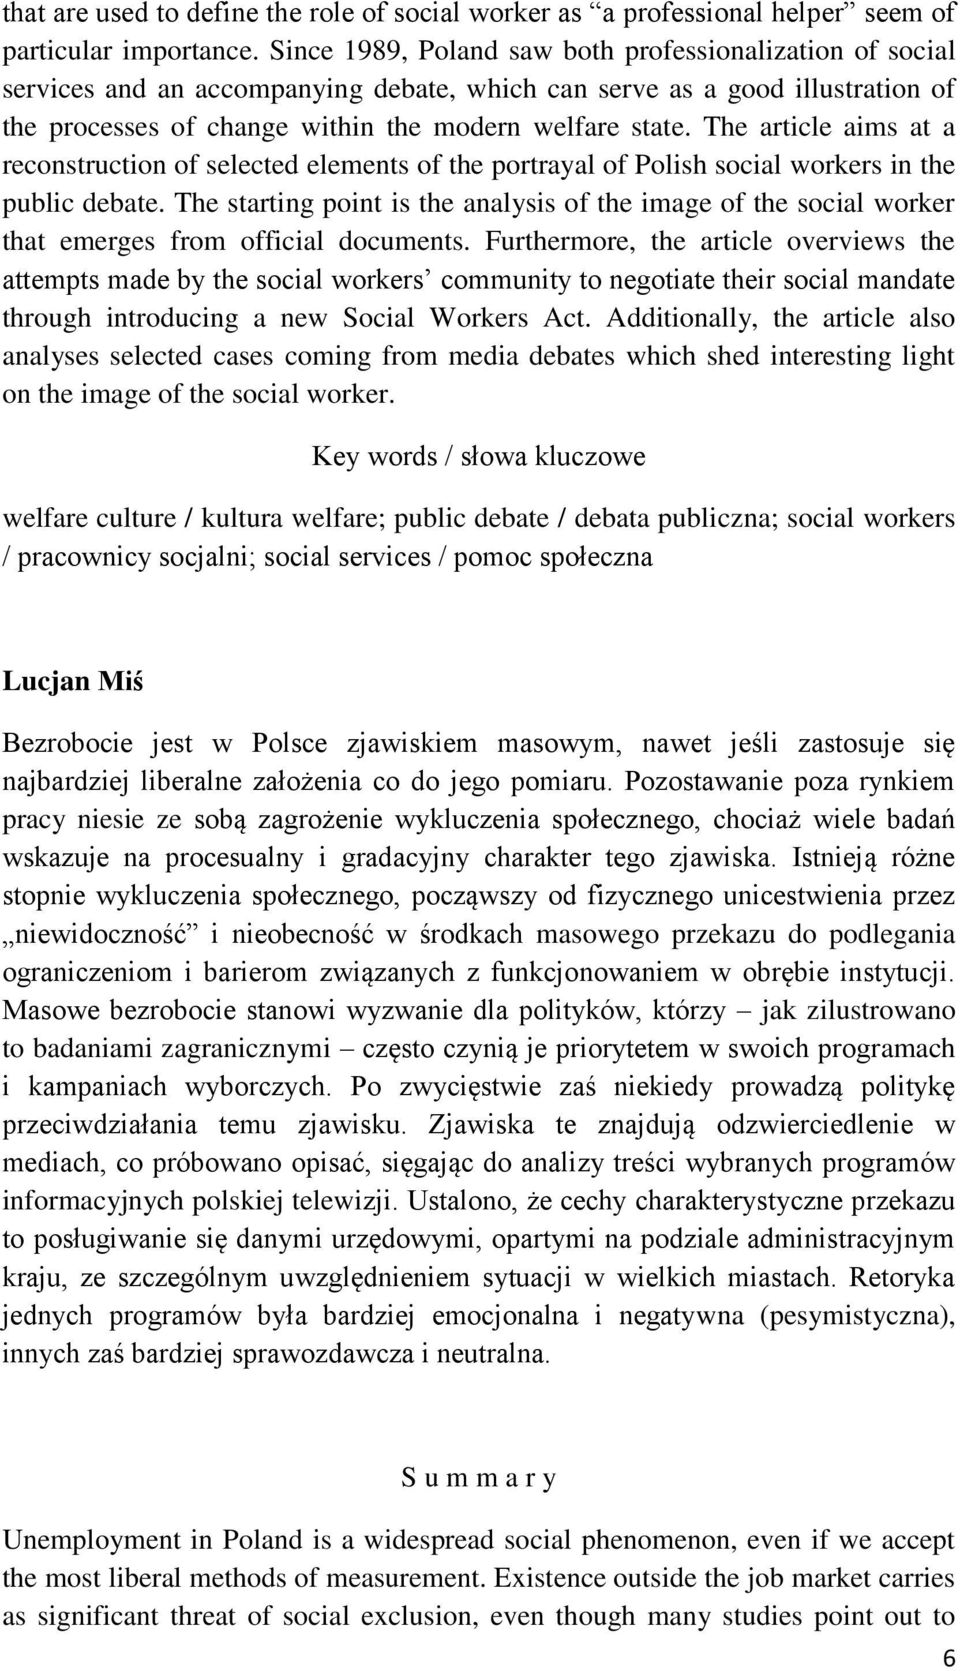 The article aims at a reconstruction of selected elements of the portrayal of Polish social workers in the public debate.